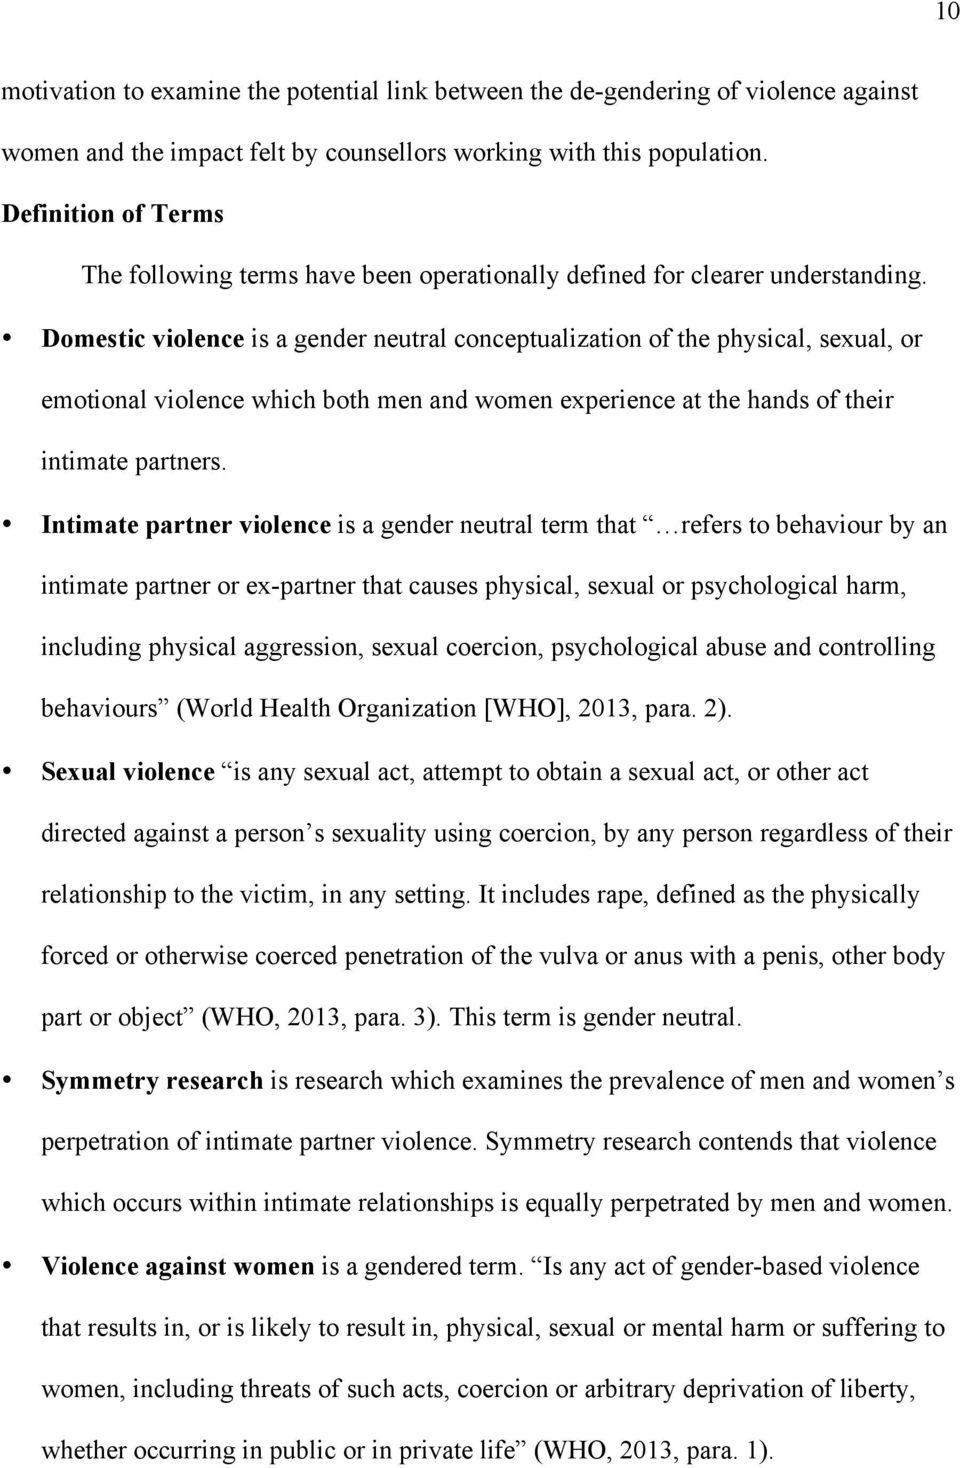 causes of domestic violence in nigeria pdf